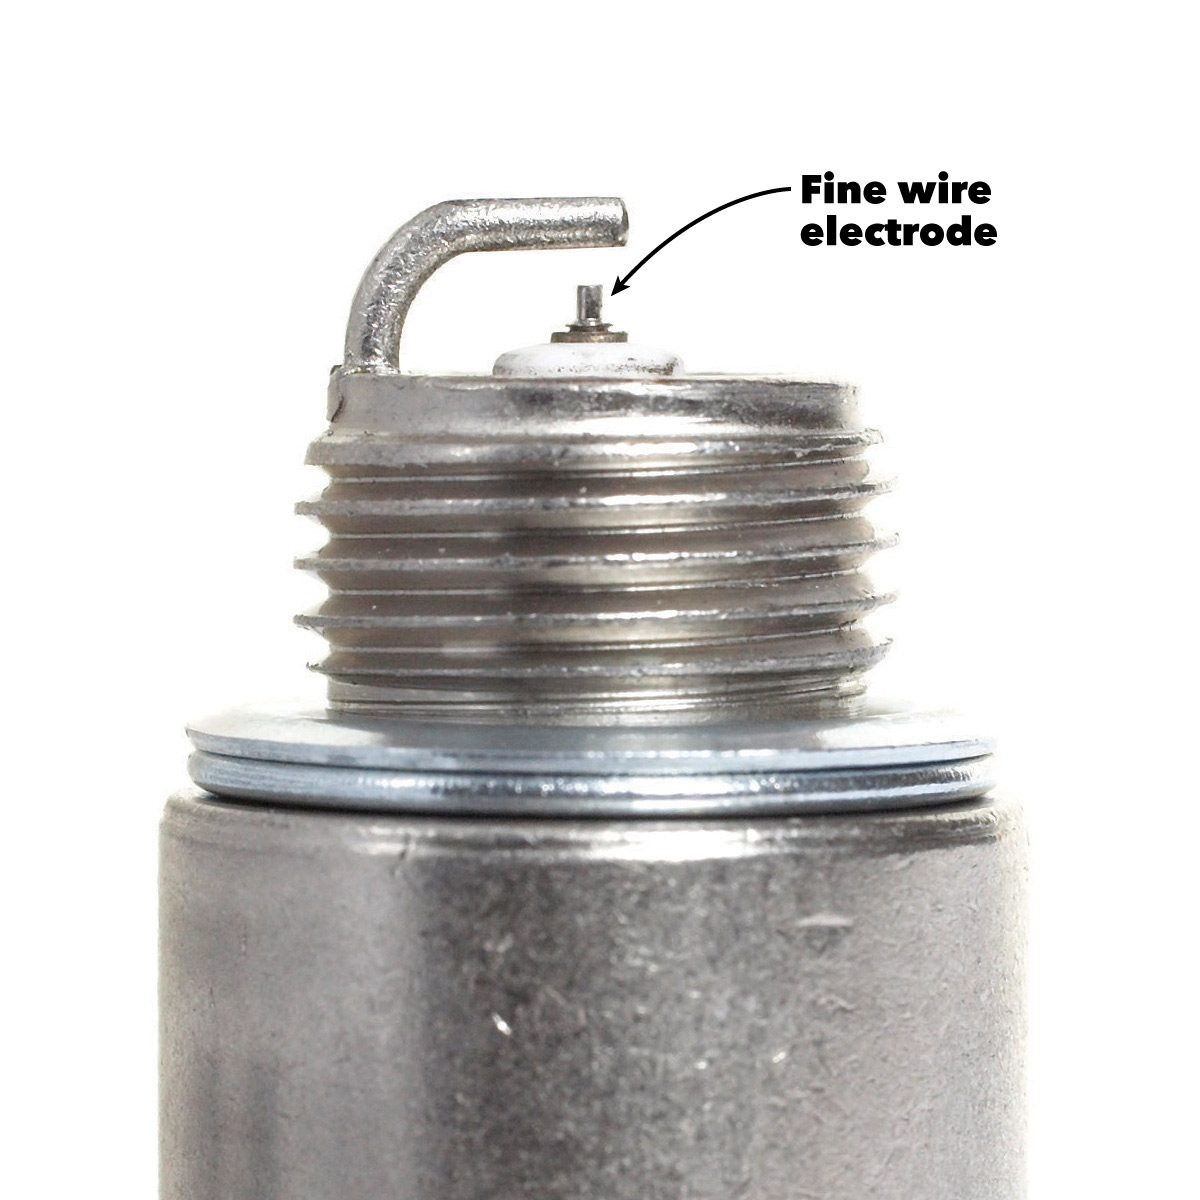 "when you change the spark plugs, don't be shocked to see the center  electrode ""worn down"" to the size of a pin  if your car was equipped with  fine-wire"